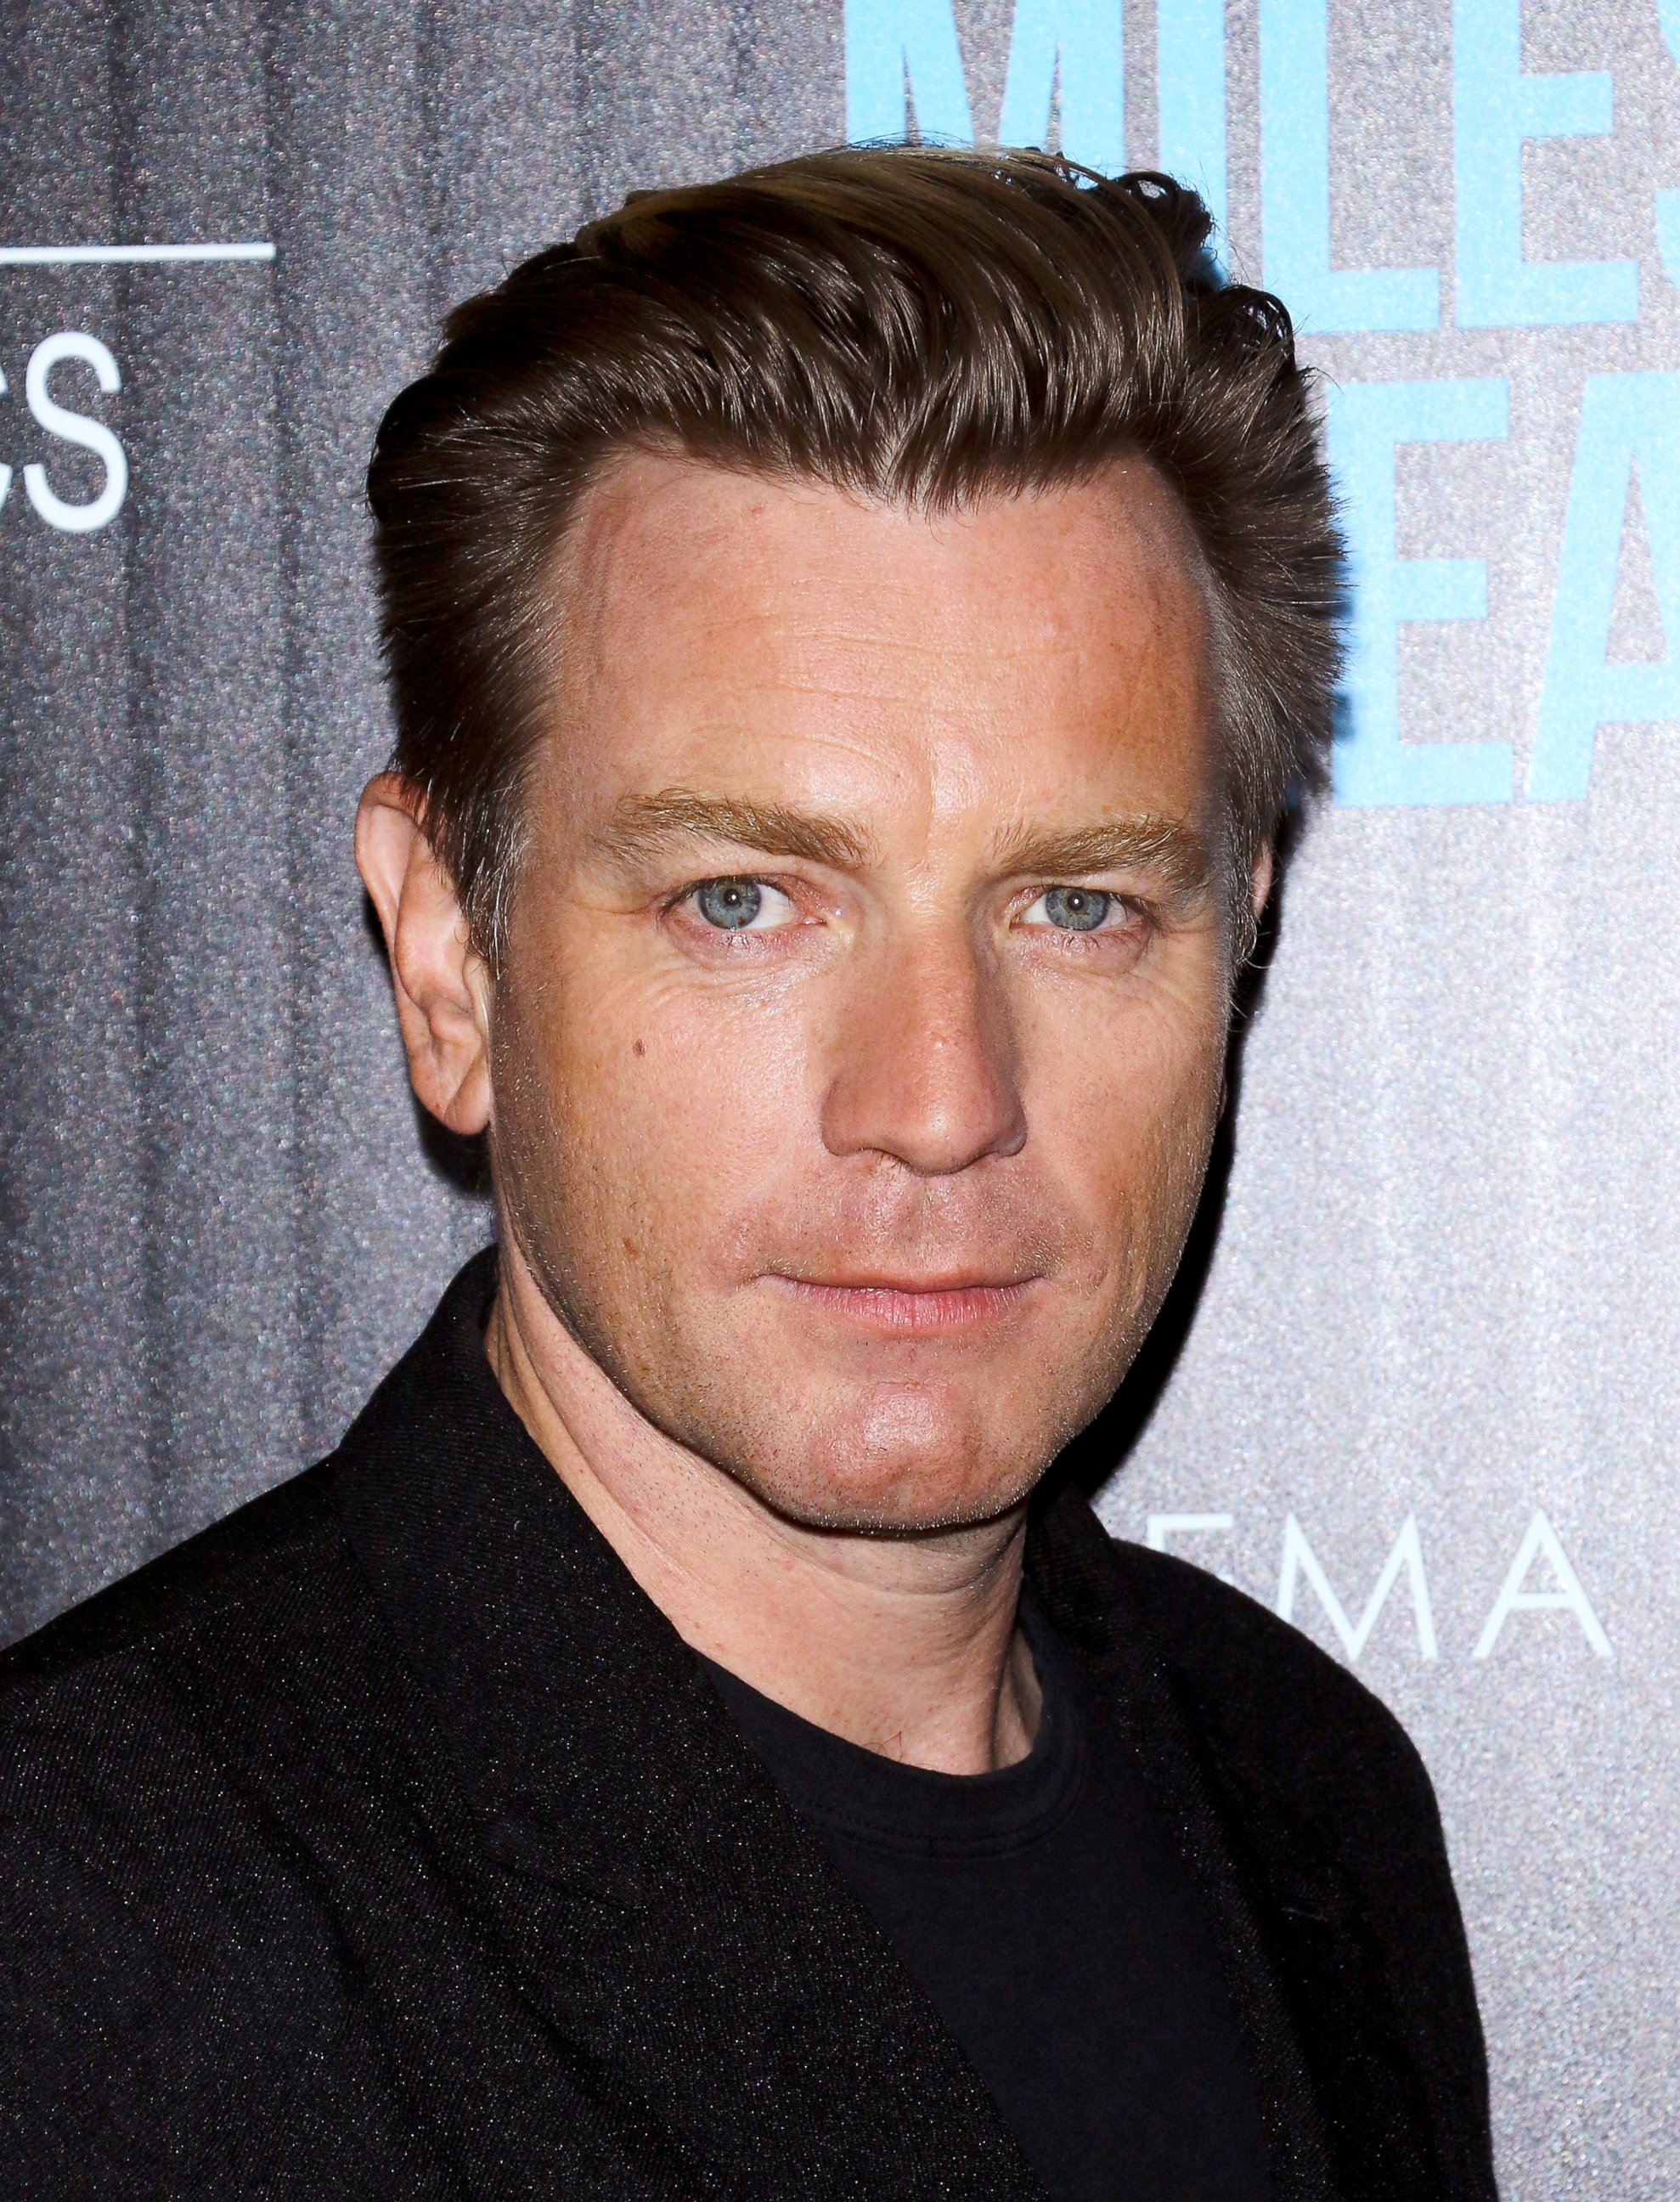 Ewan McGregor Videos at ABC News Video Archive at abcnews.com